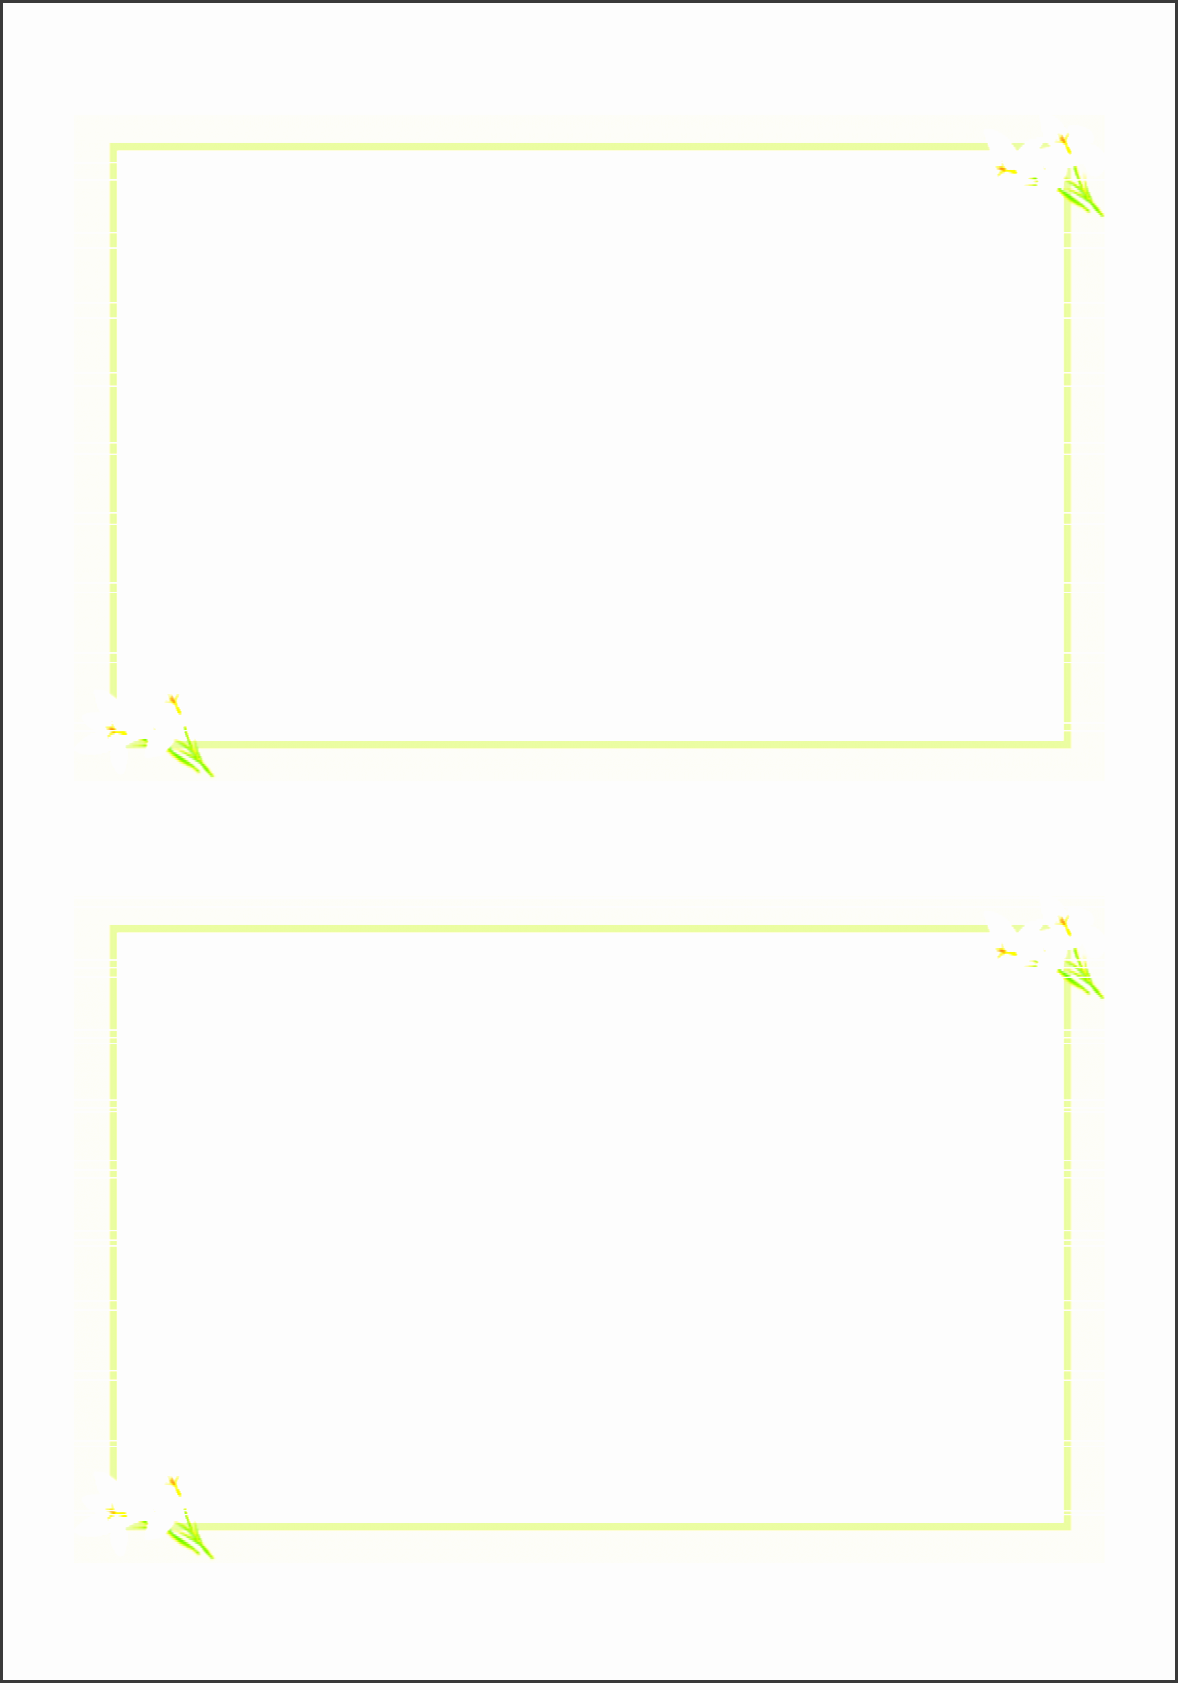 blank pledge card templates free printable flash template taradel greeting cards best free home design idea inspiration